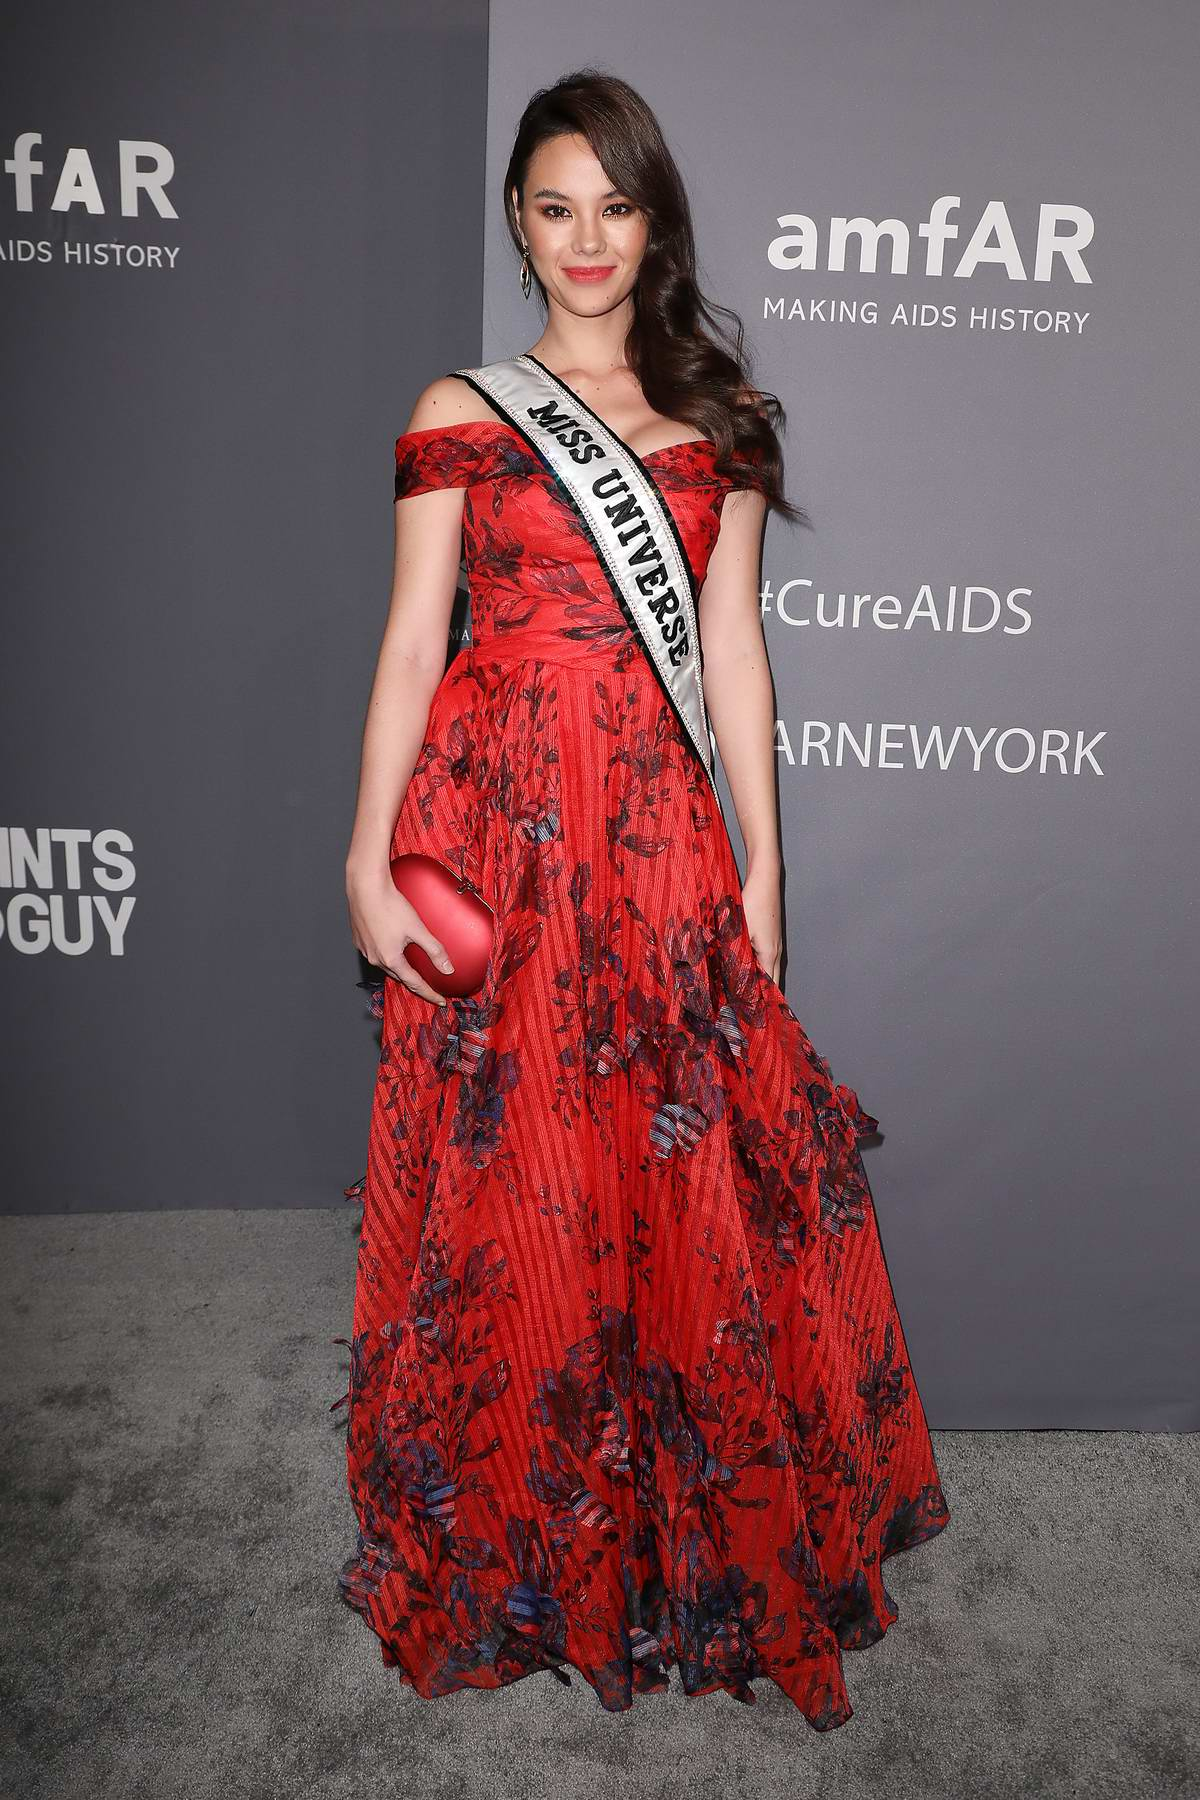 Catriona Gray attends amfAR New York Gala 2019 at Cipriani Wall Street in New York City